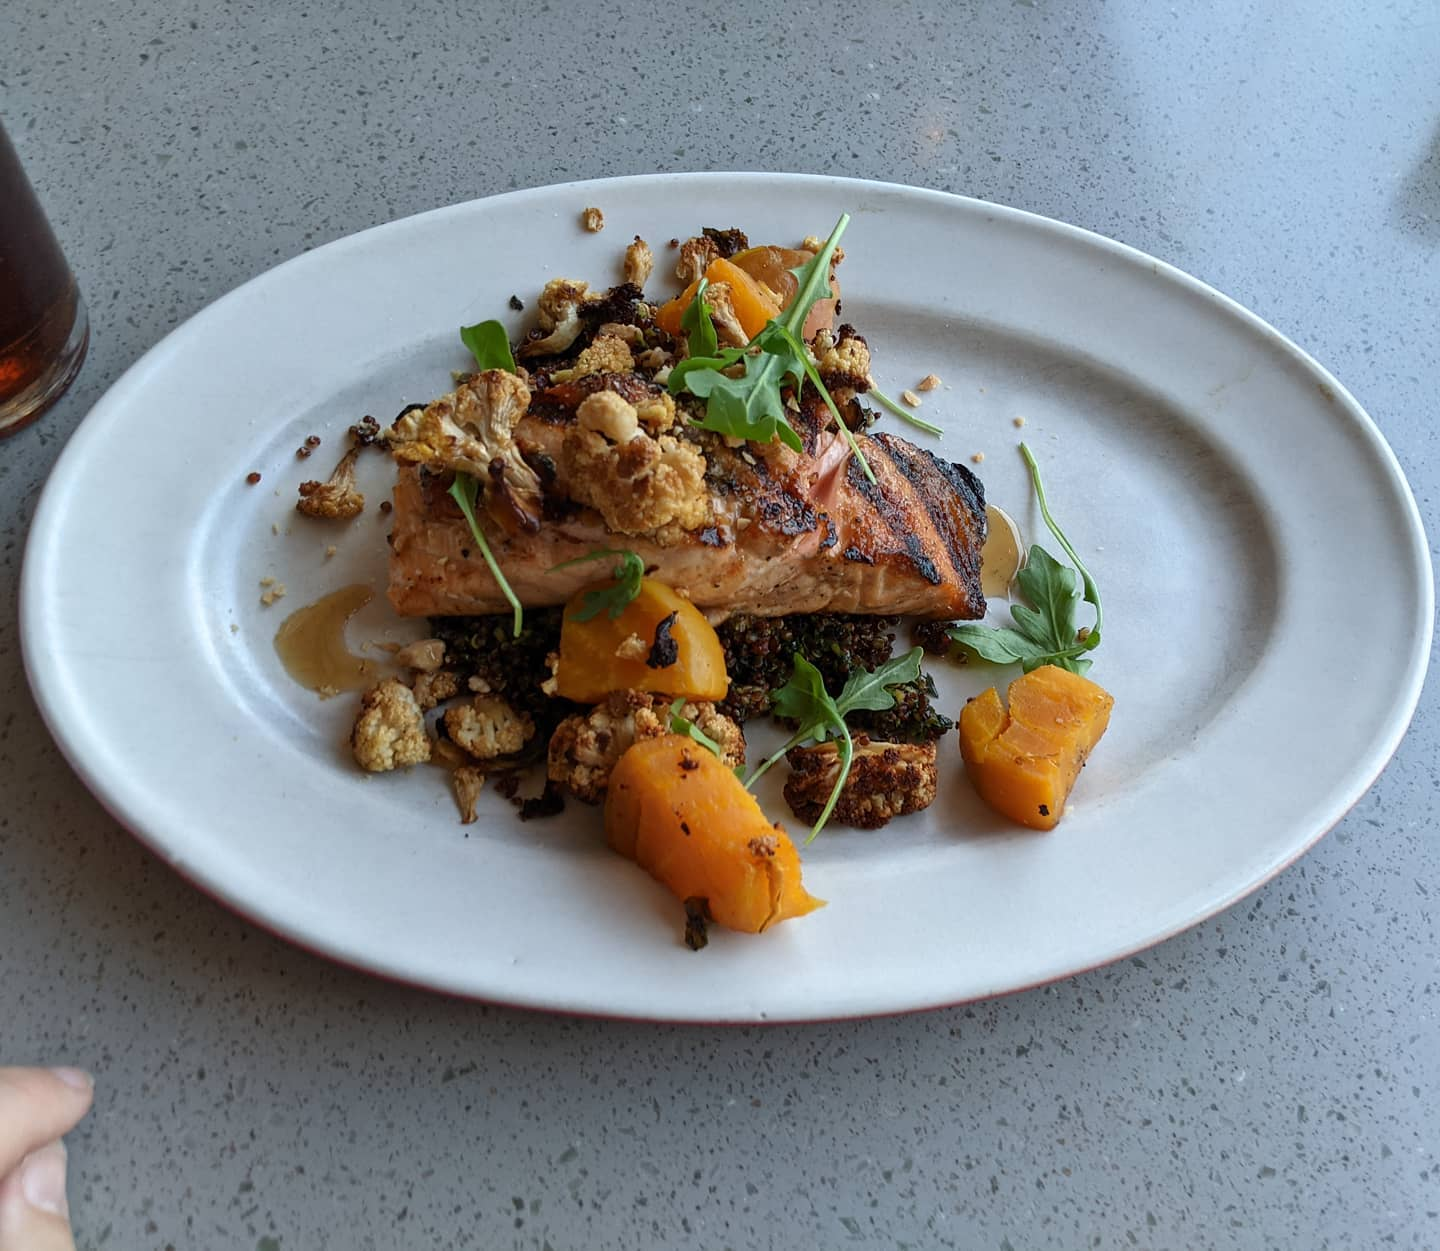 Tonight's #phoenix #foodporn is a simple salmon filet over pesto quinoa. And a beer.